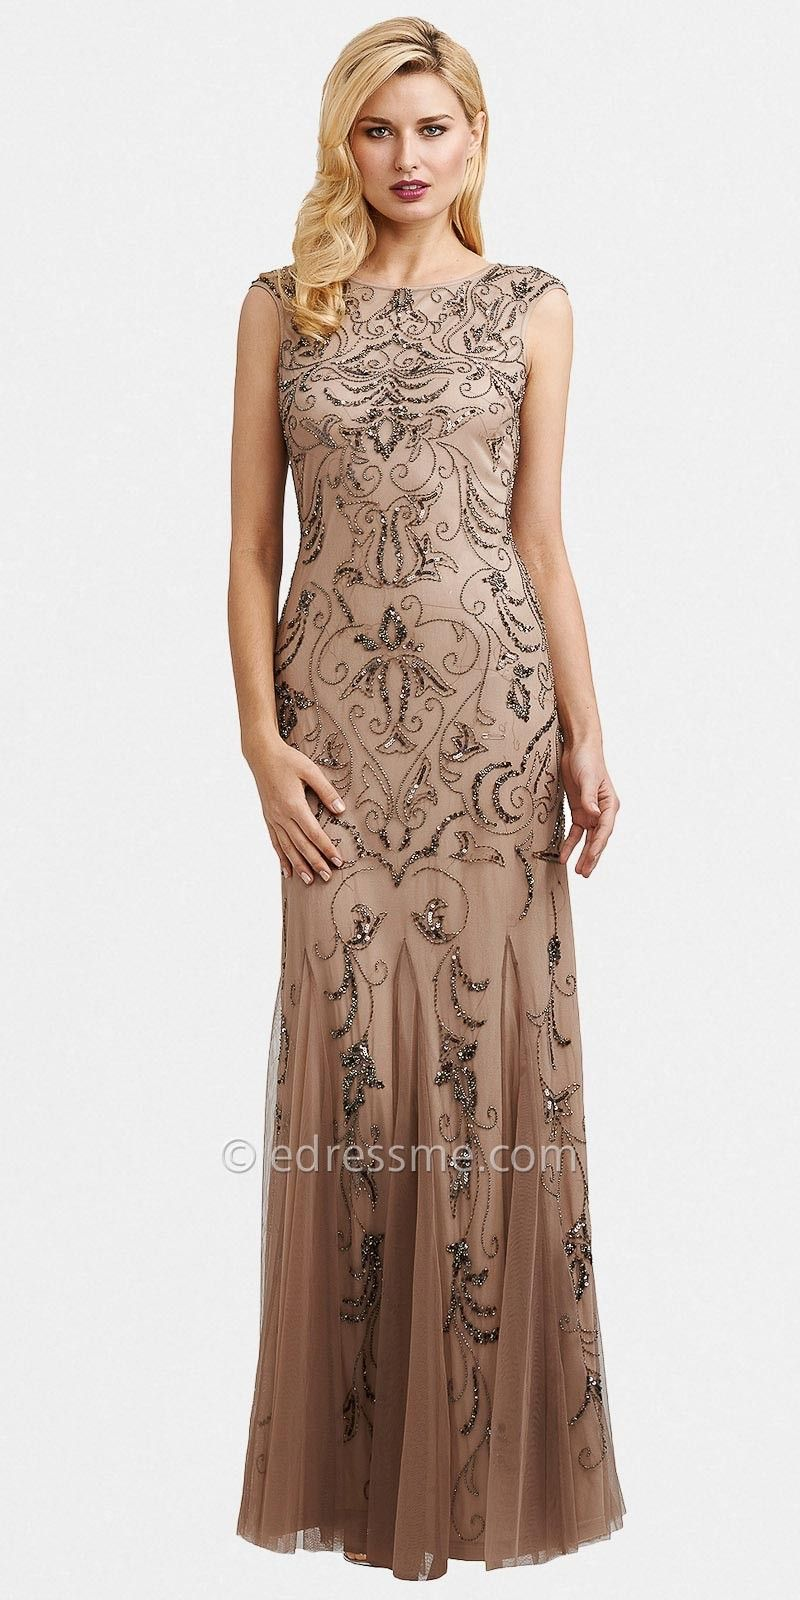 Buff Sheer Beaded Evening Dresses by Adrianna Papell | Our vow ...